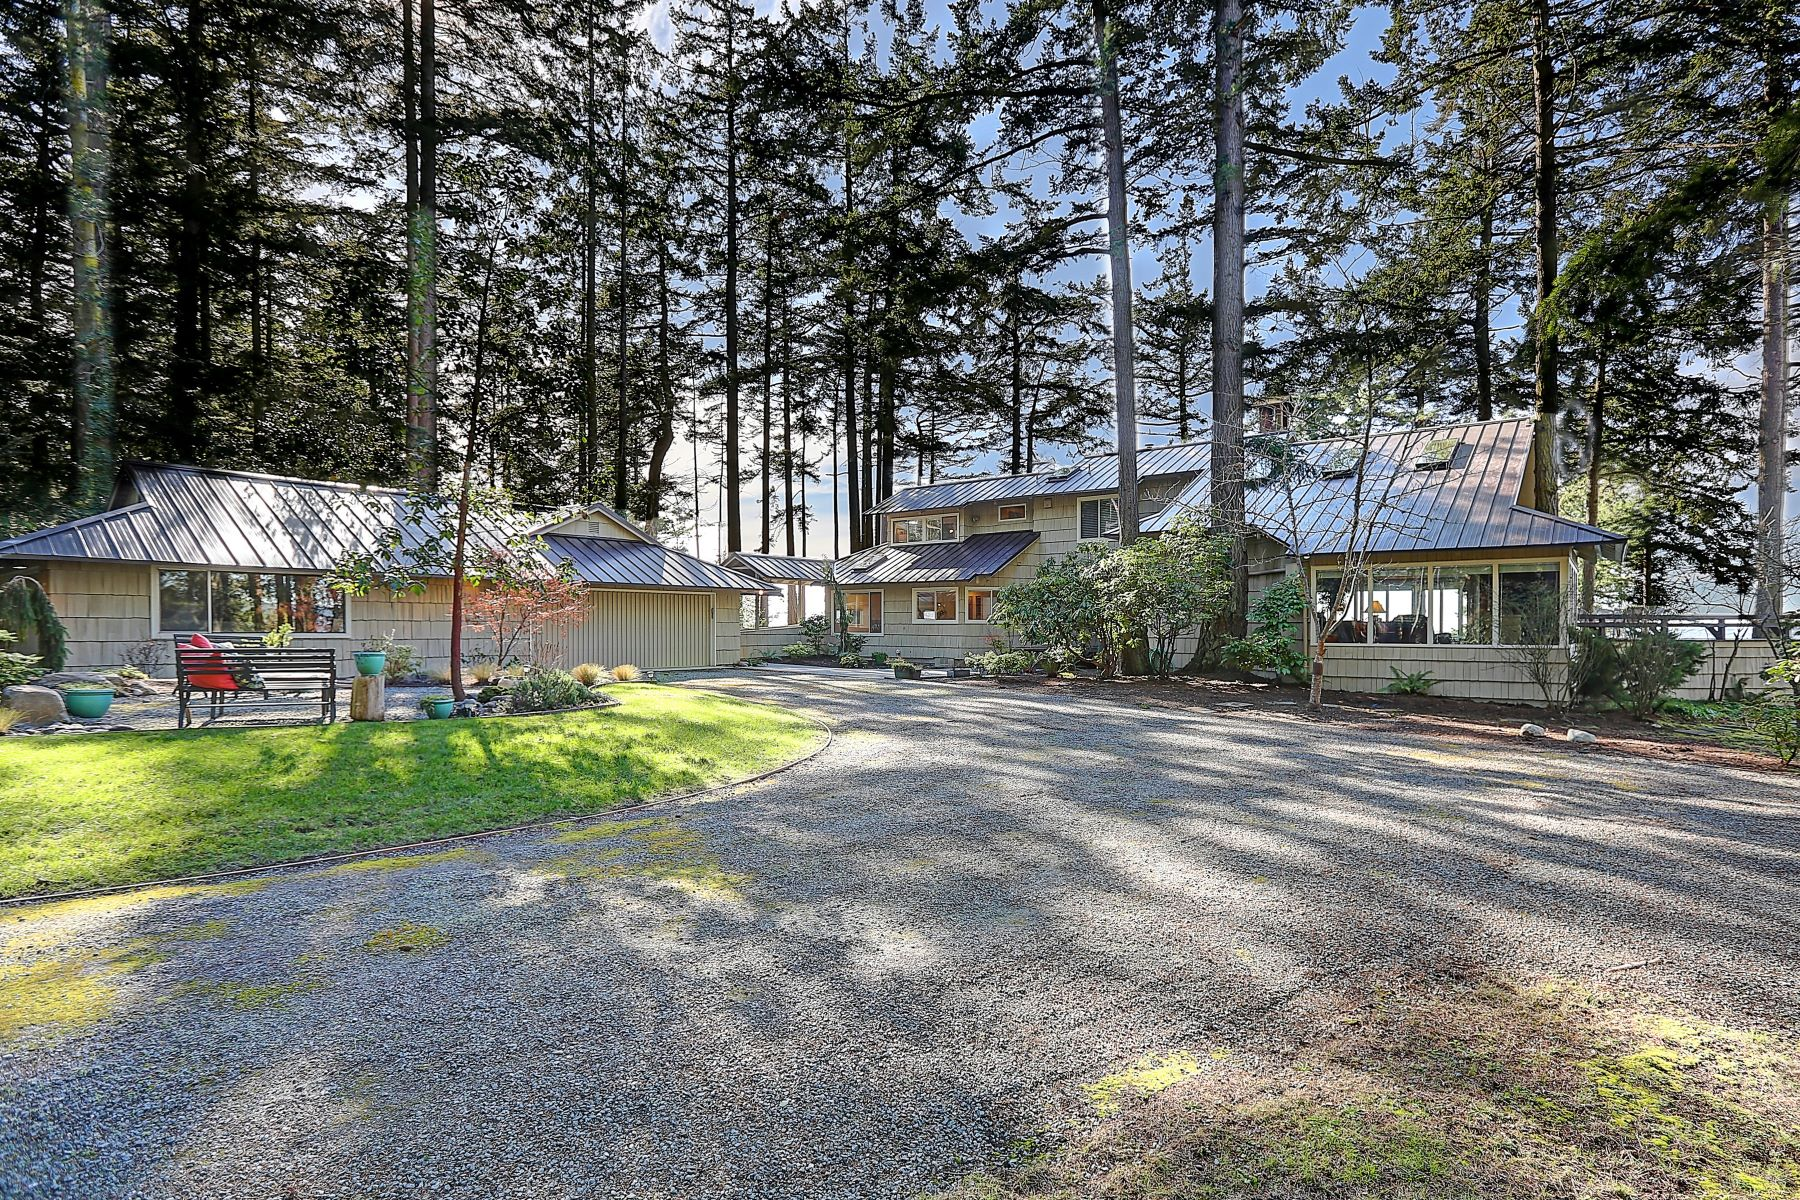 Single Family Home for Sale at 851 Sunset Dr, Camano Island 851 N Sunset Dr Camano Island, Washington 98282 United States